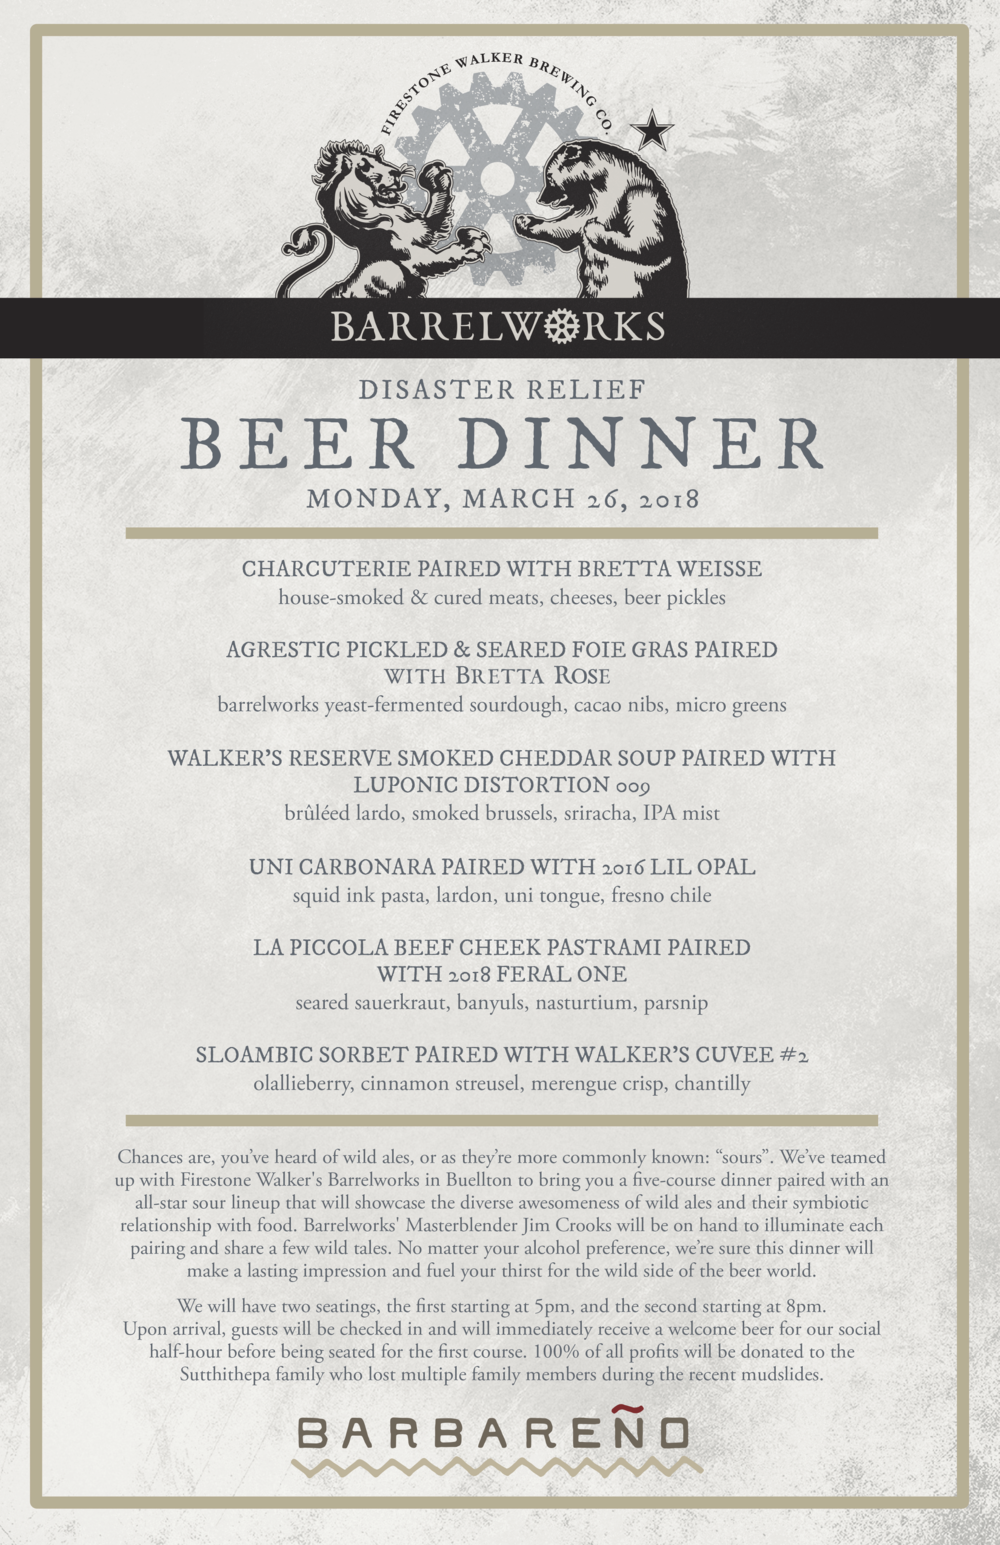 final barbareno_beerdinner menu.png